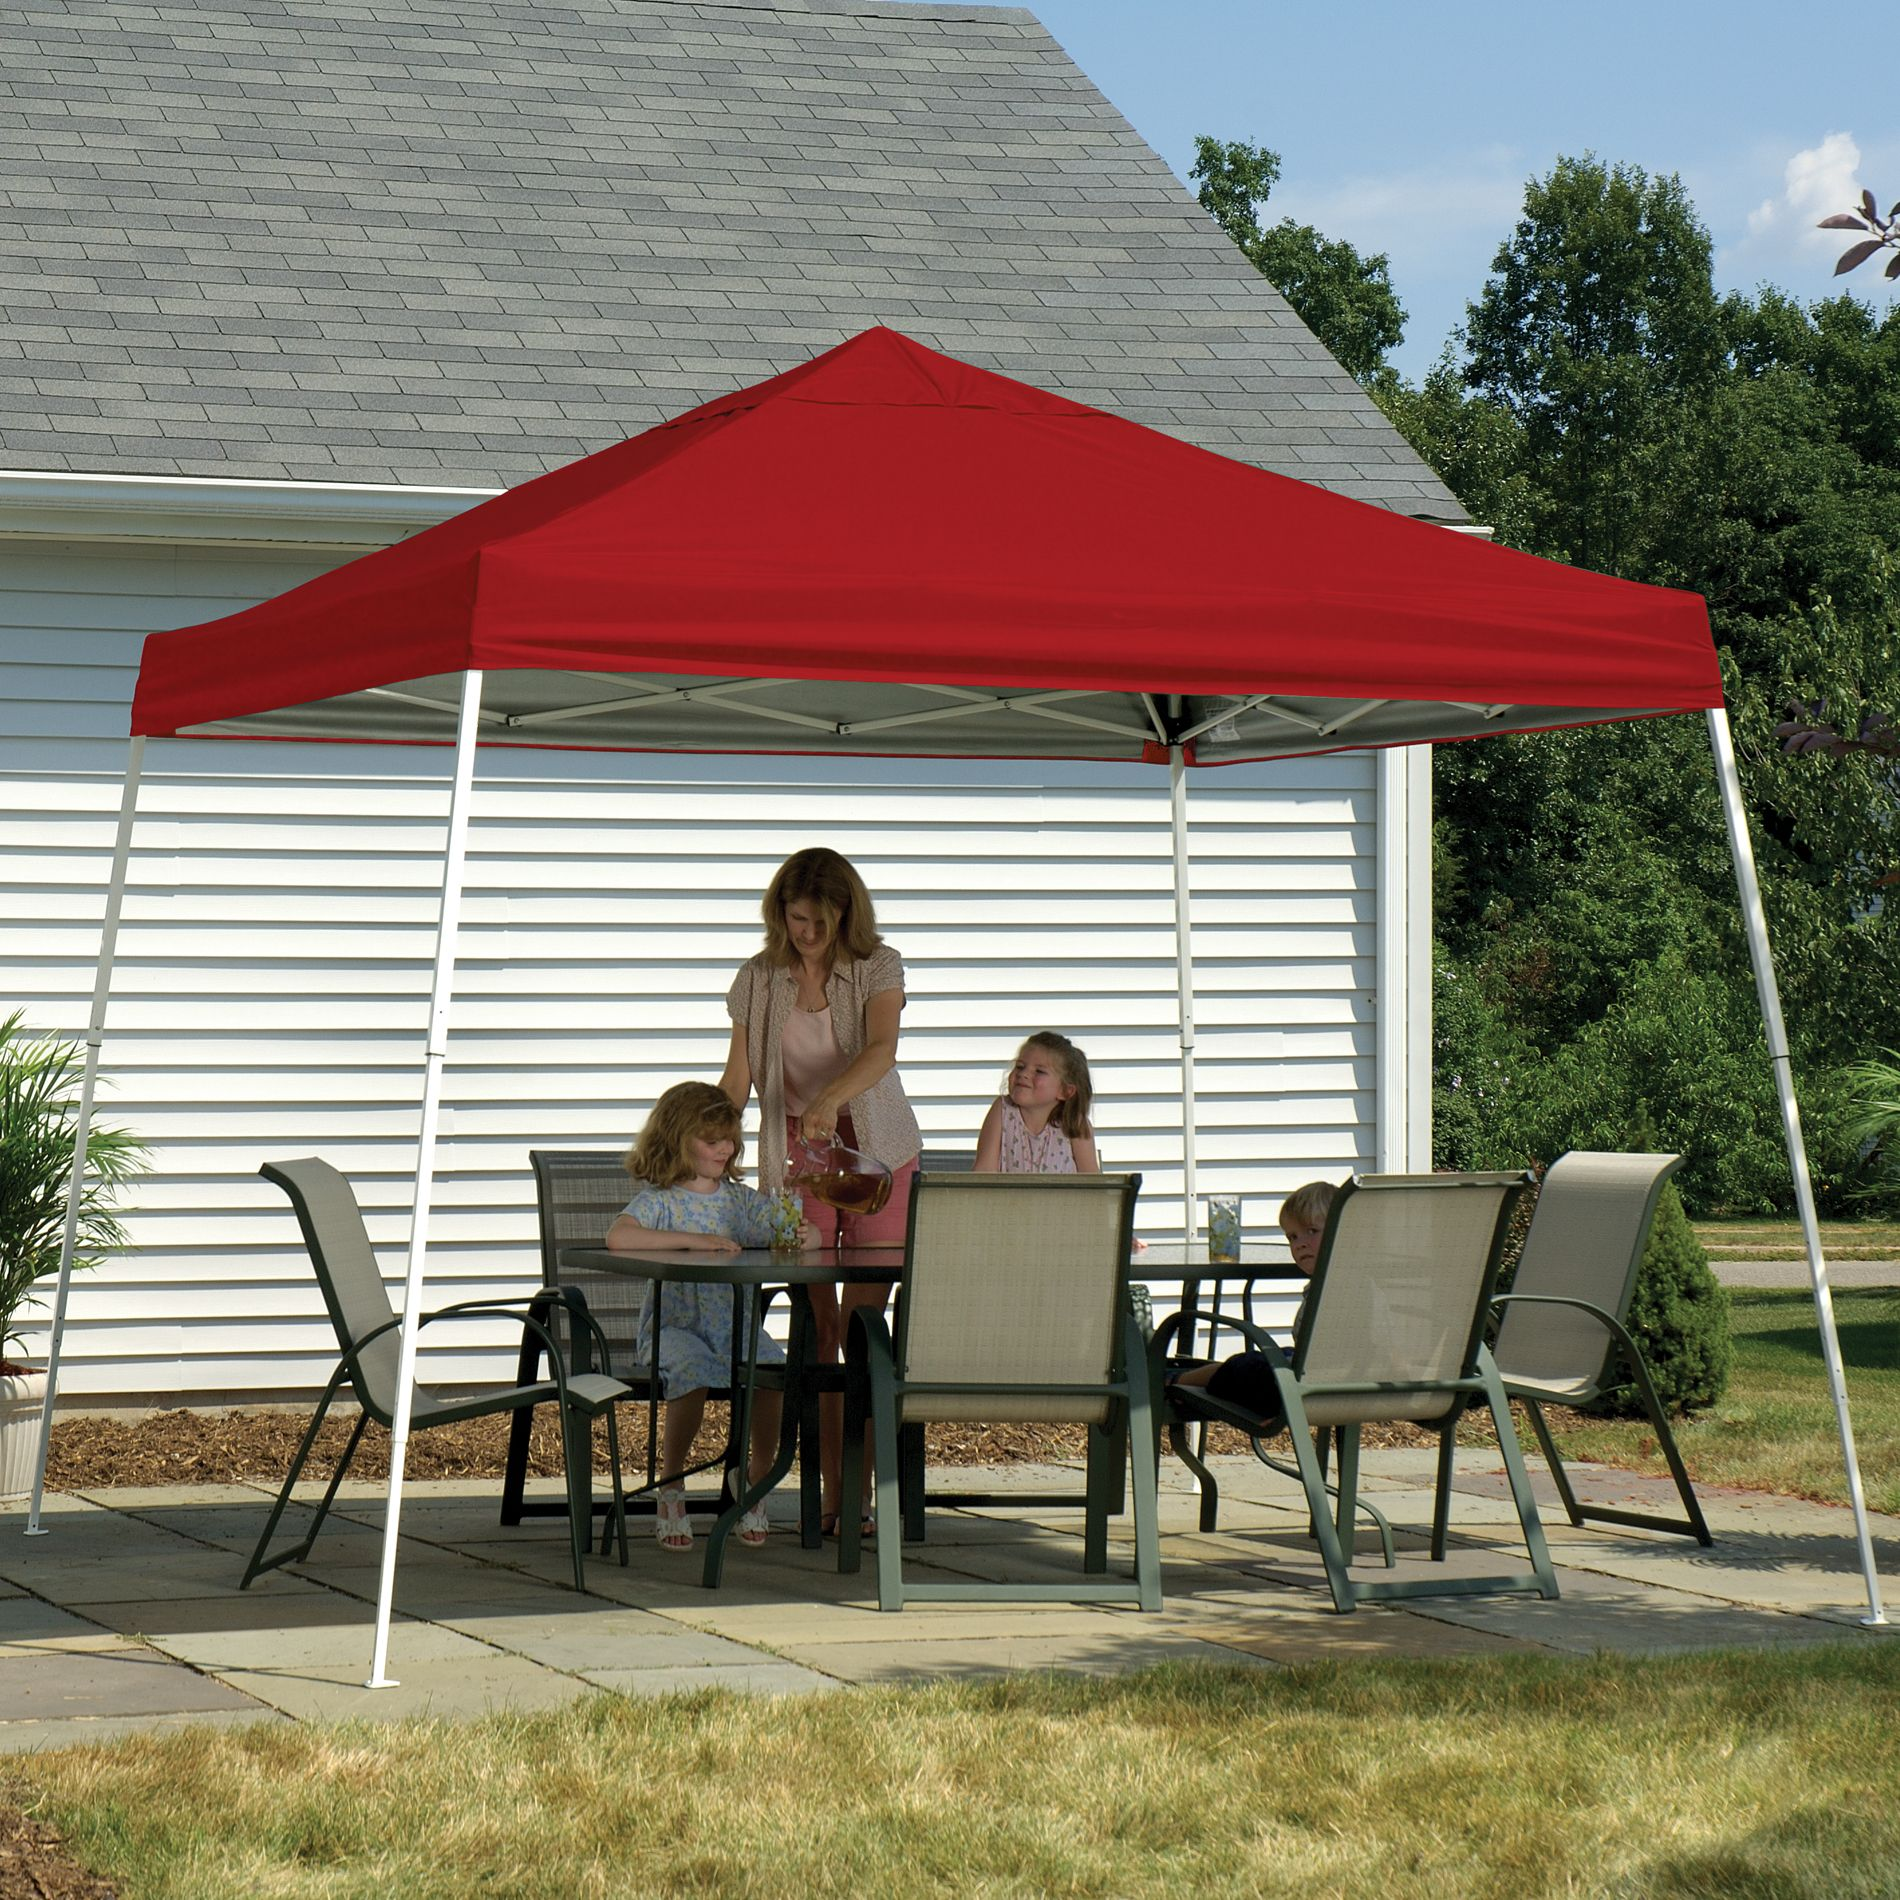 Shelterlogic Pop- 12' X Canopy With Red Cover